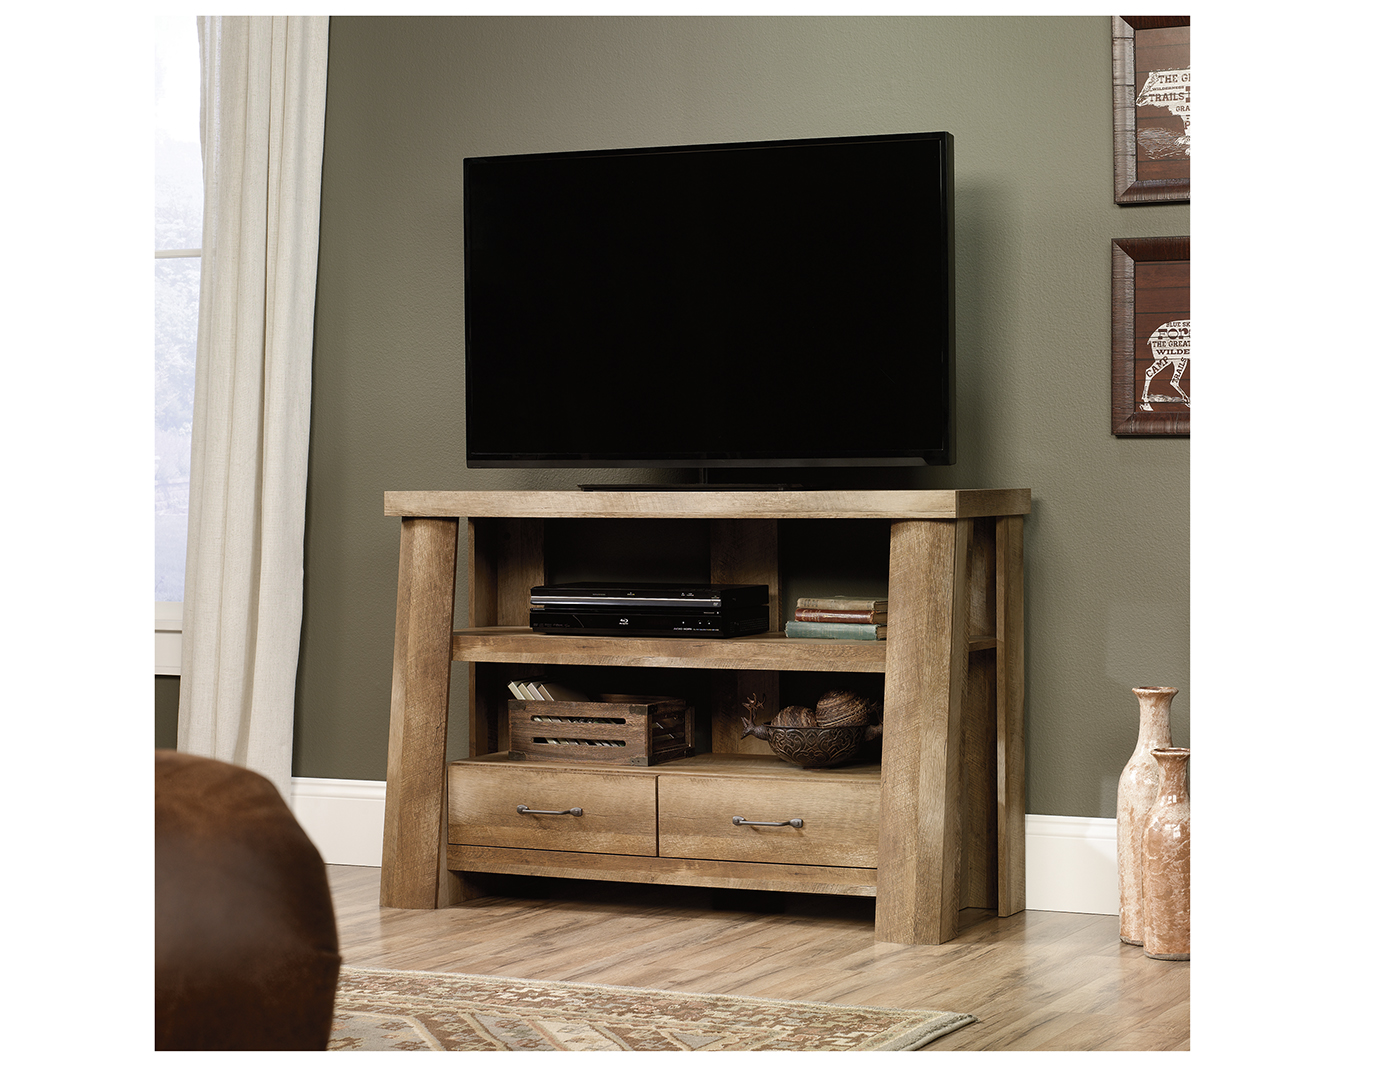 Boone Mountain Anywhere Console